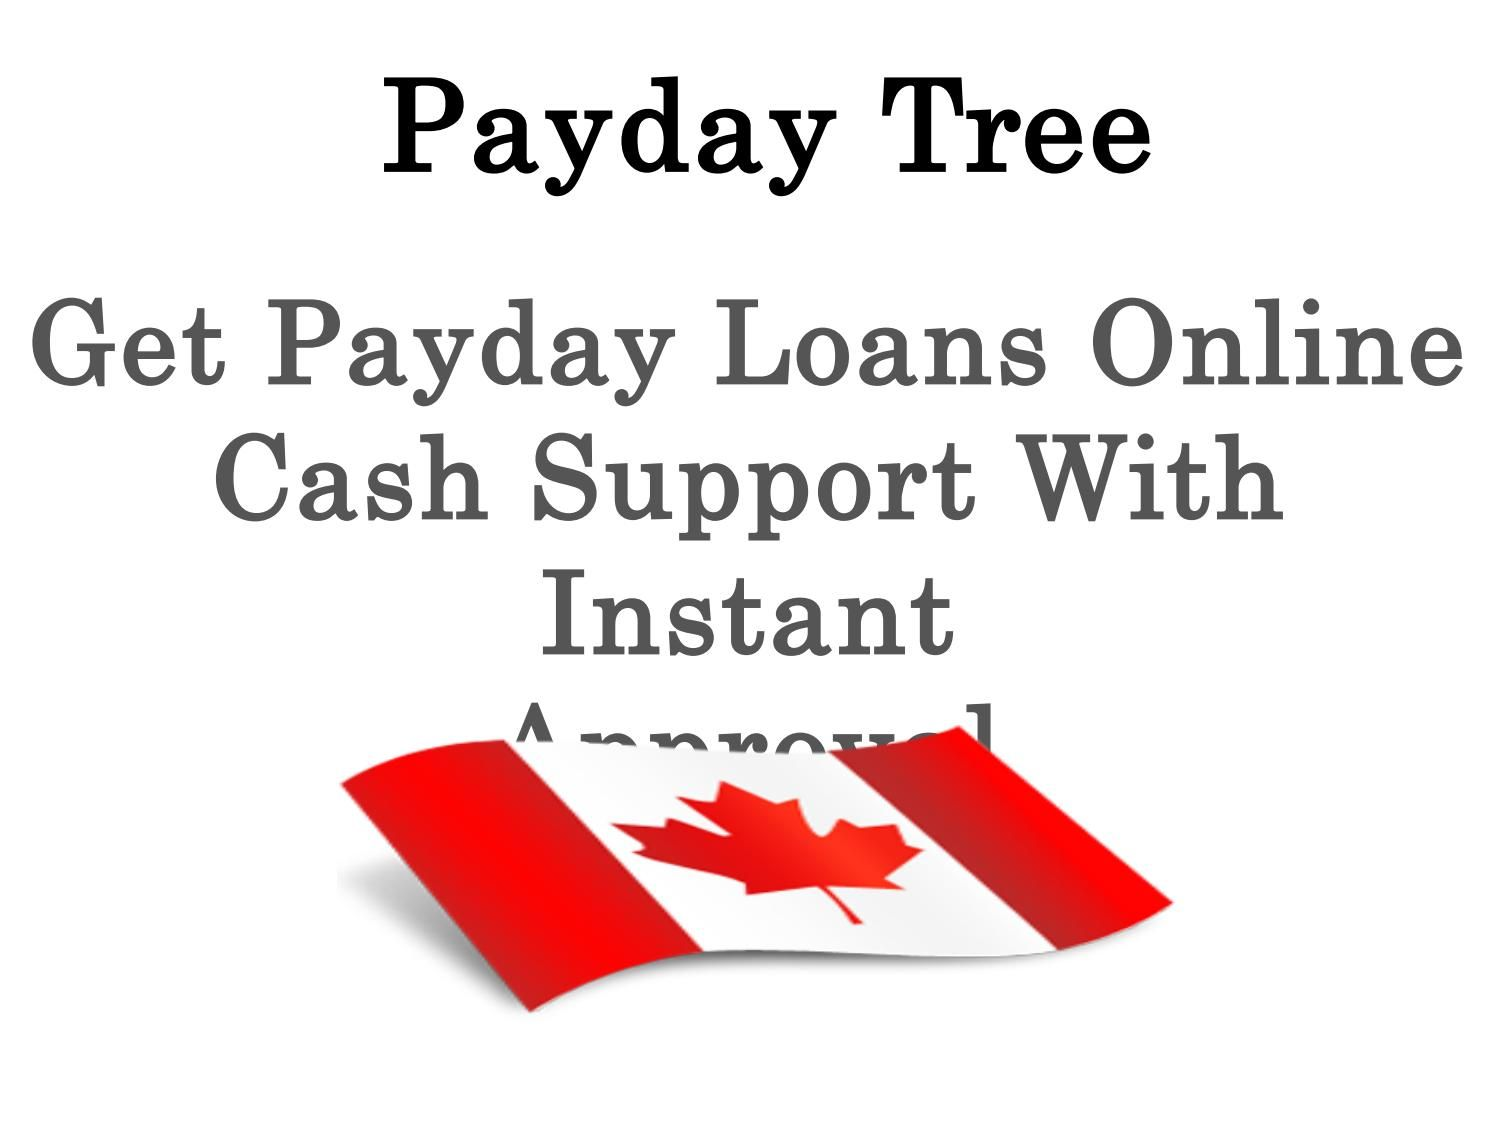 Instant Payday Loans Canada A Easy Way To Get Instant Cash Loans Help For Emergency Needs Instant Cash Loans Instant Payday Loans Payday Loans